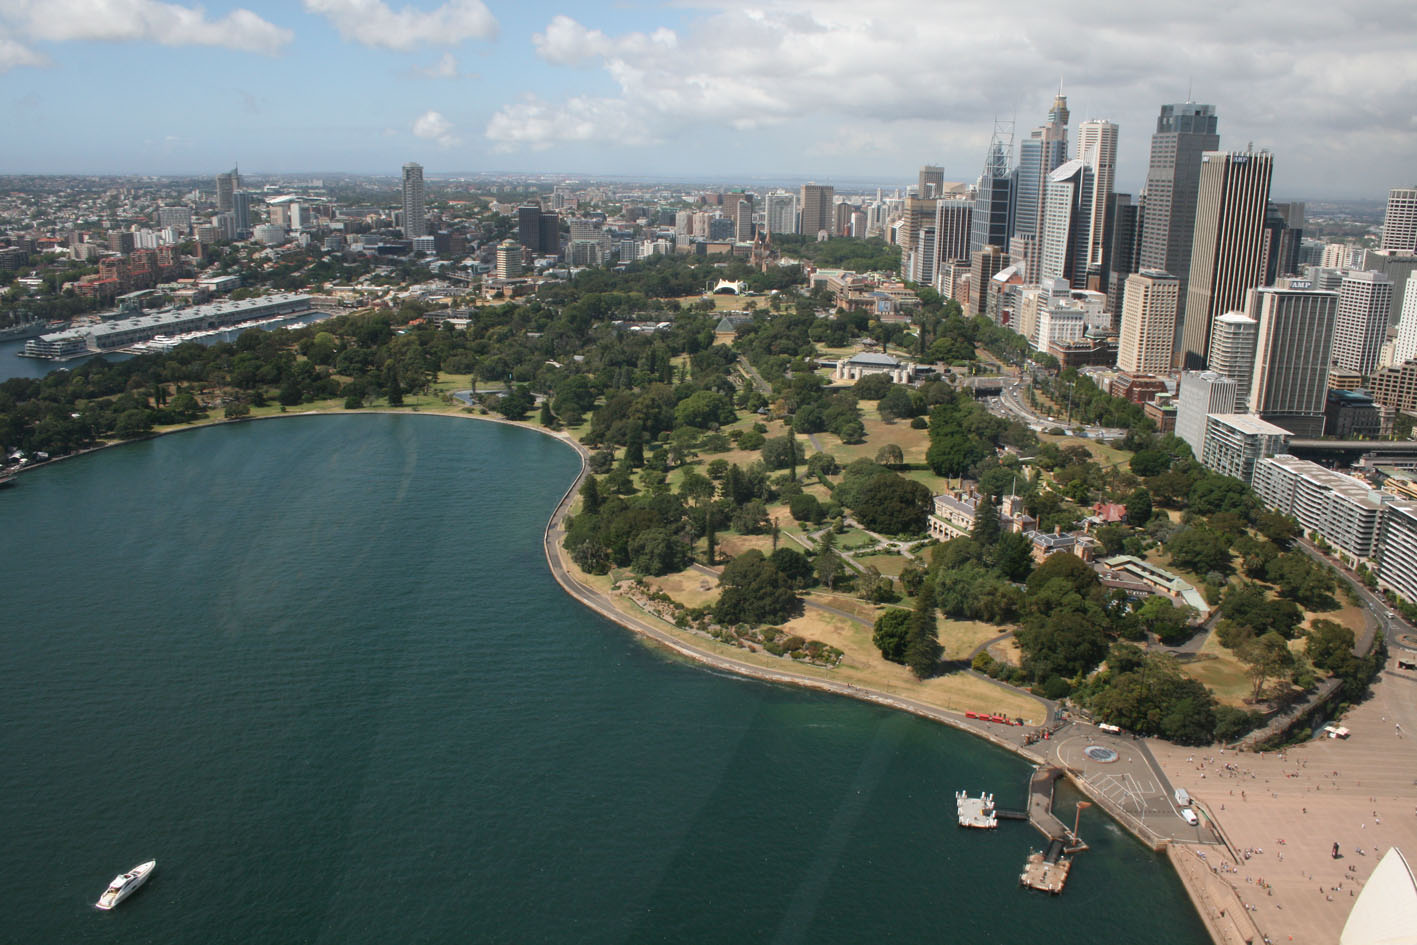 City of Sydney and Farm Cove from above (2009), with one of Sydney's earliest remaining cultural landscapes in the foreground.